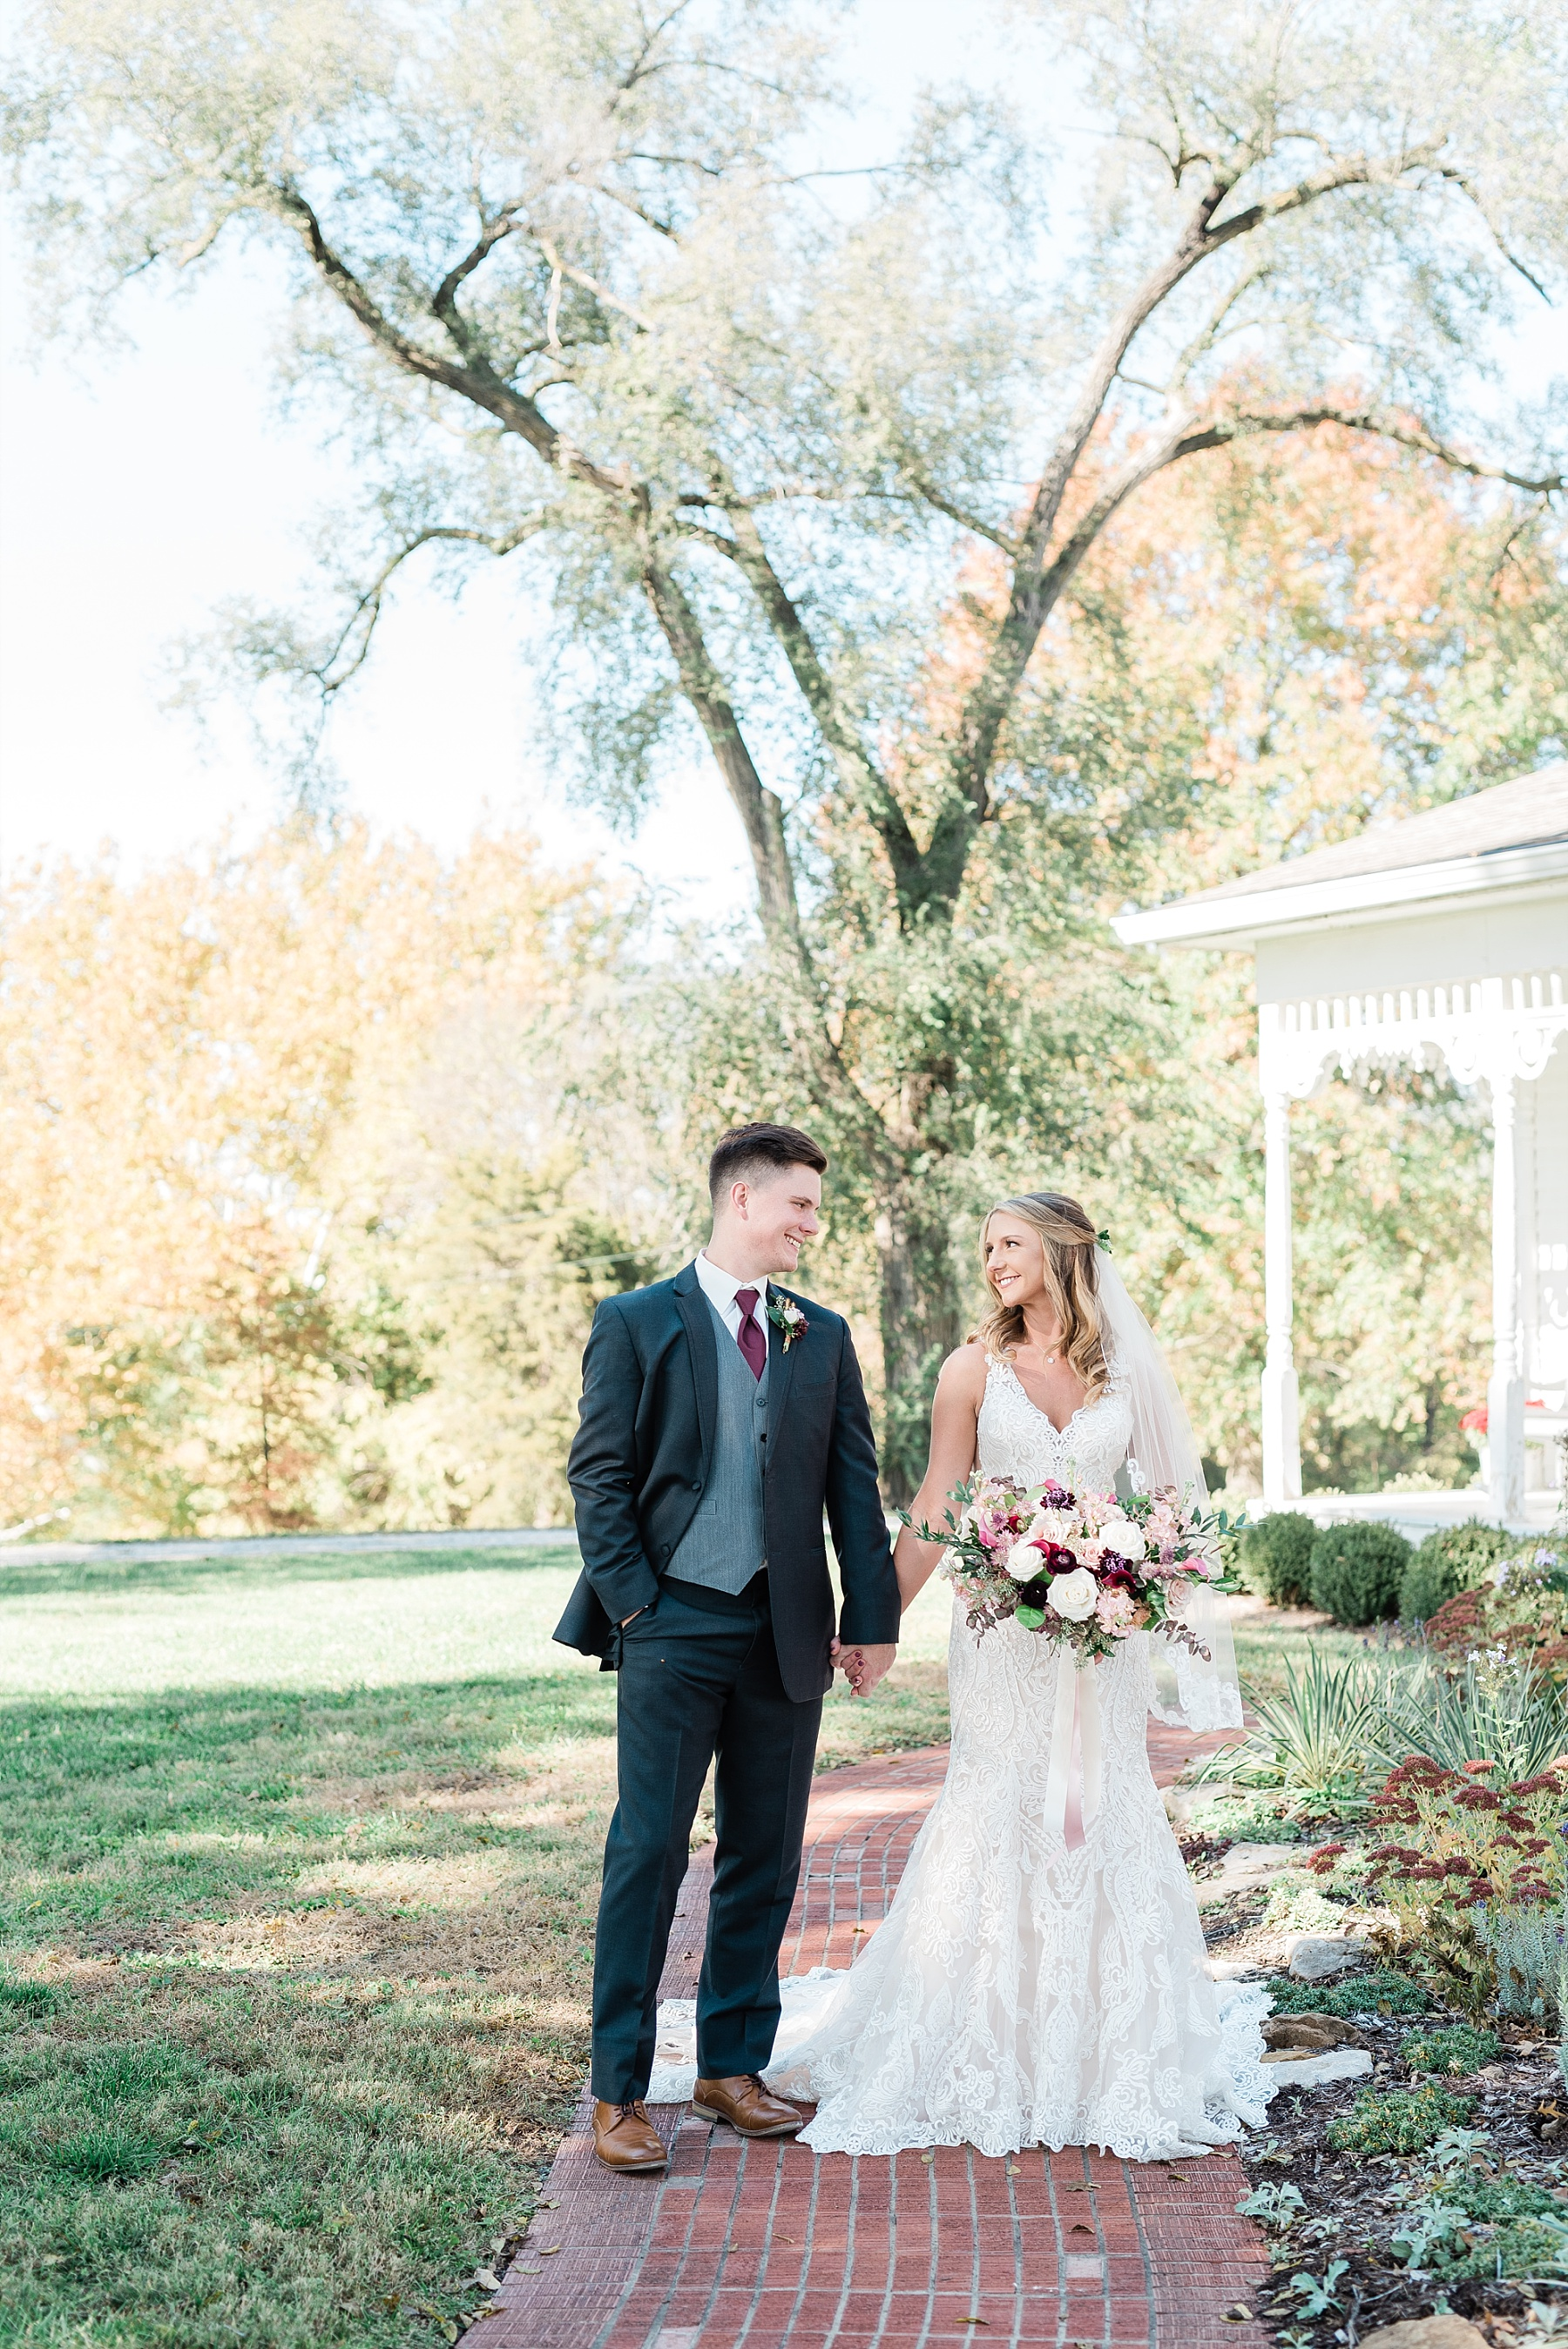 Golden Autumn Outdoor Wedding with Ivory, Bergundy, and Blush Color Palette at Blue Bell Farms  by Kelsi Kliethermes Photography_0076.jpg